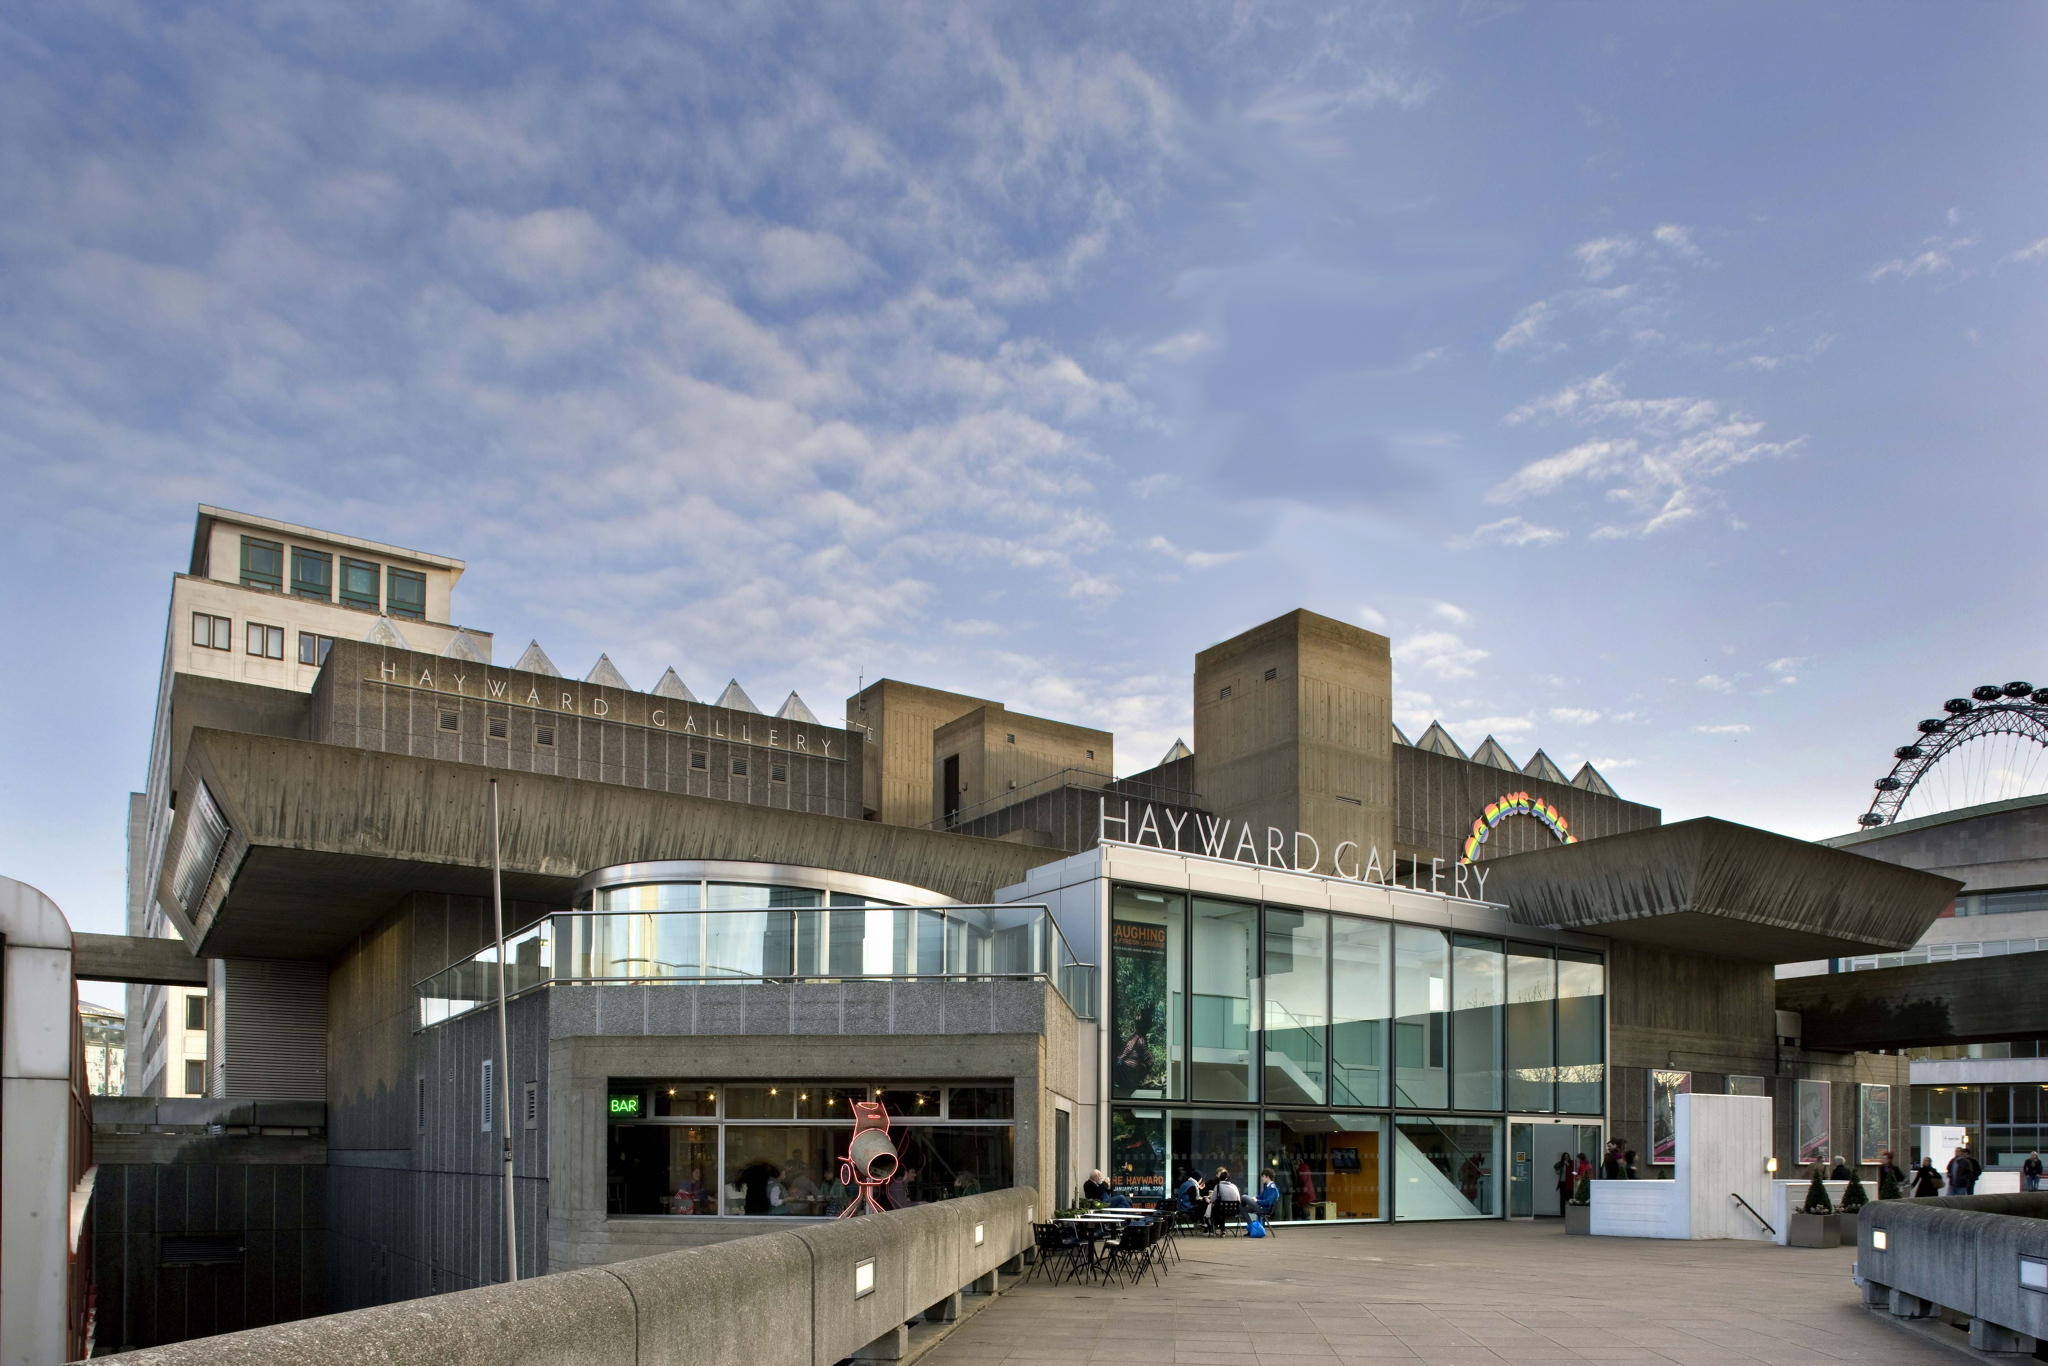 Hayward gallery entrance